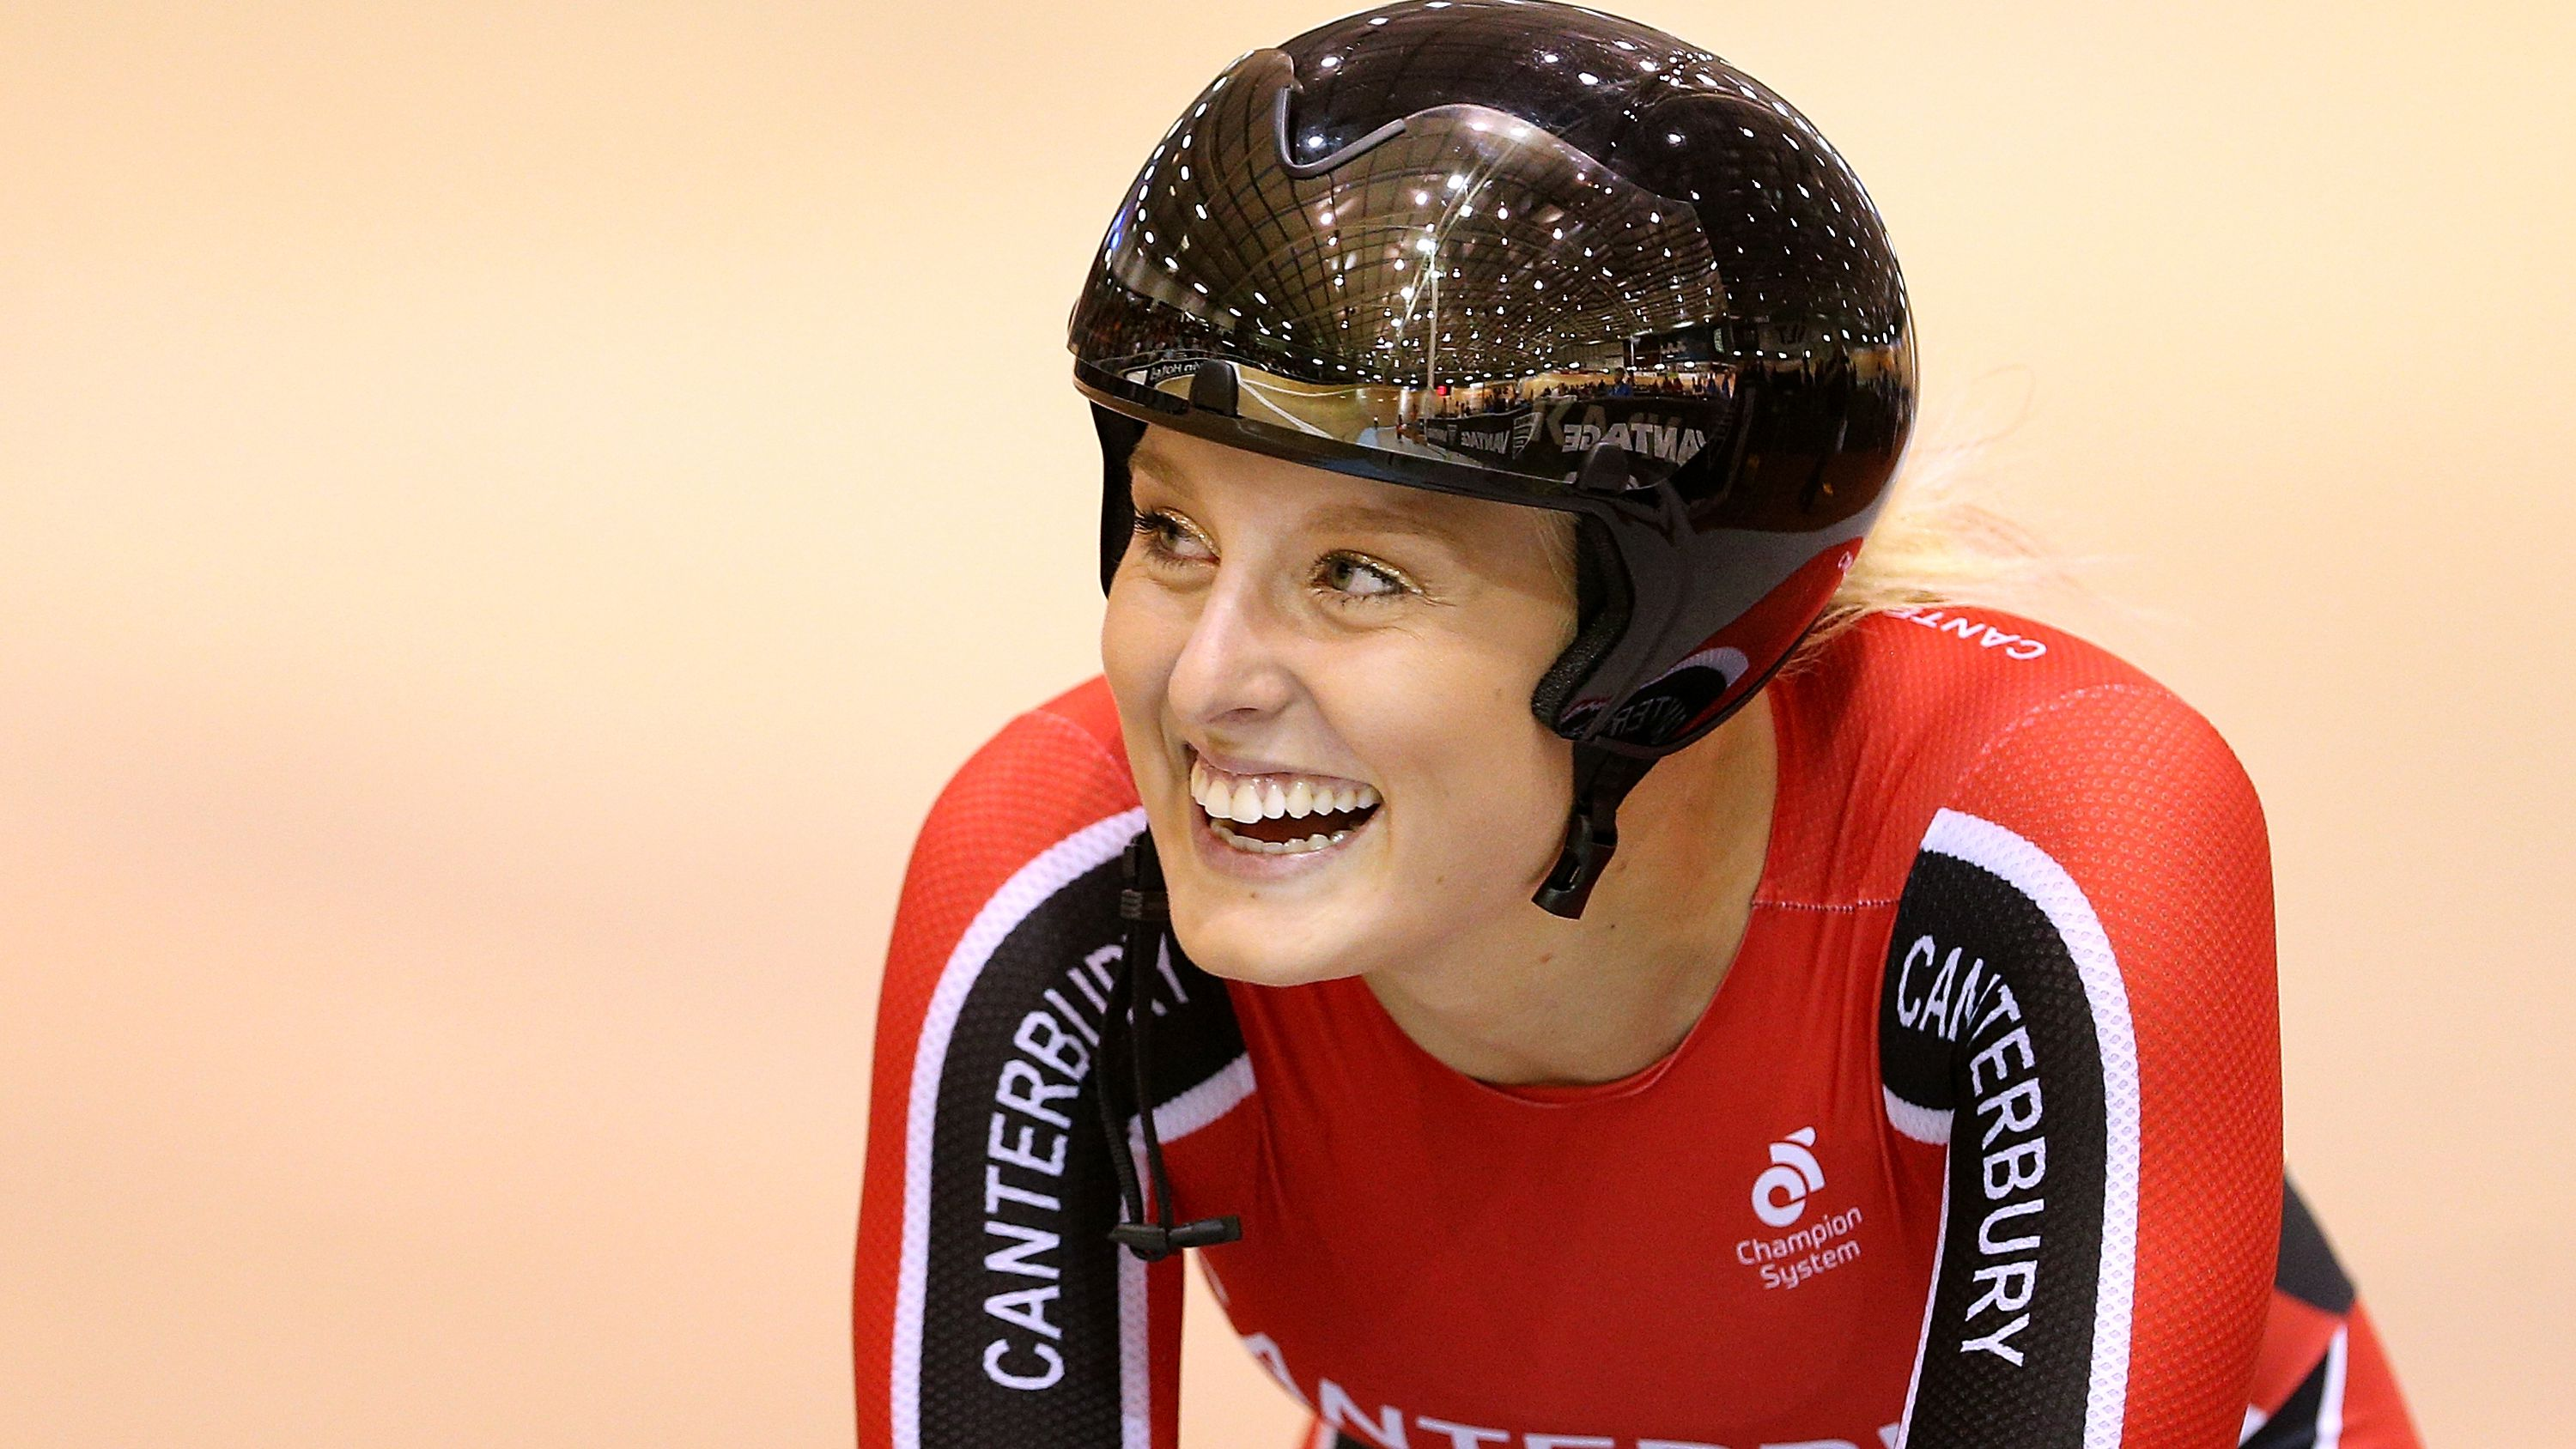 Olympian cyclist Olivia Podmore's family mourn her sudden death